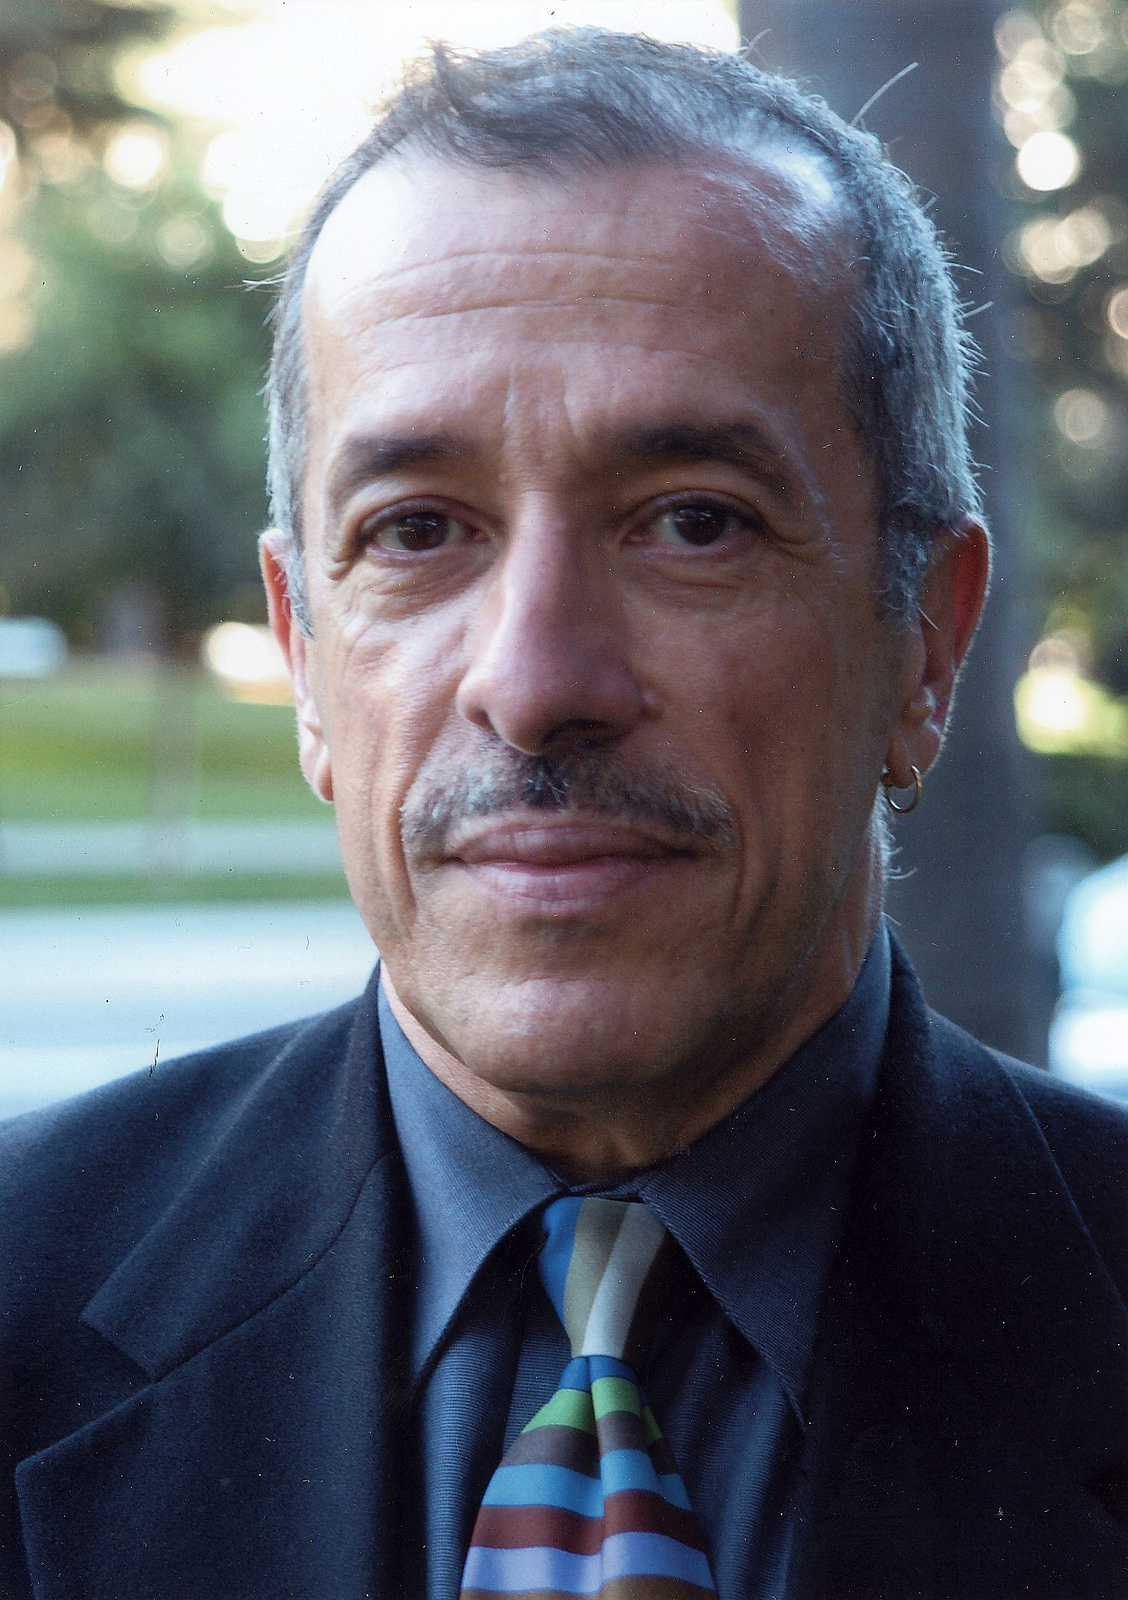 Raul Ramirez was an SF State journalism professor for 30 years and died friday, Nov. 15, 2013. He was 67 years old. Photo credit: SF State Journalism Department